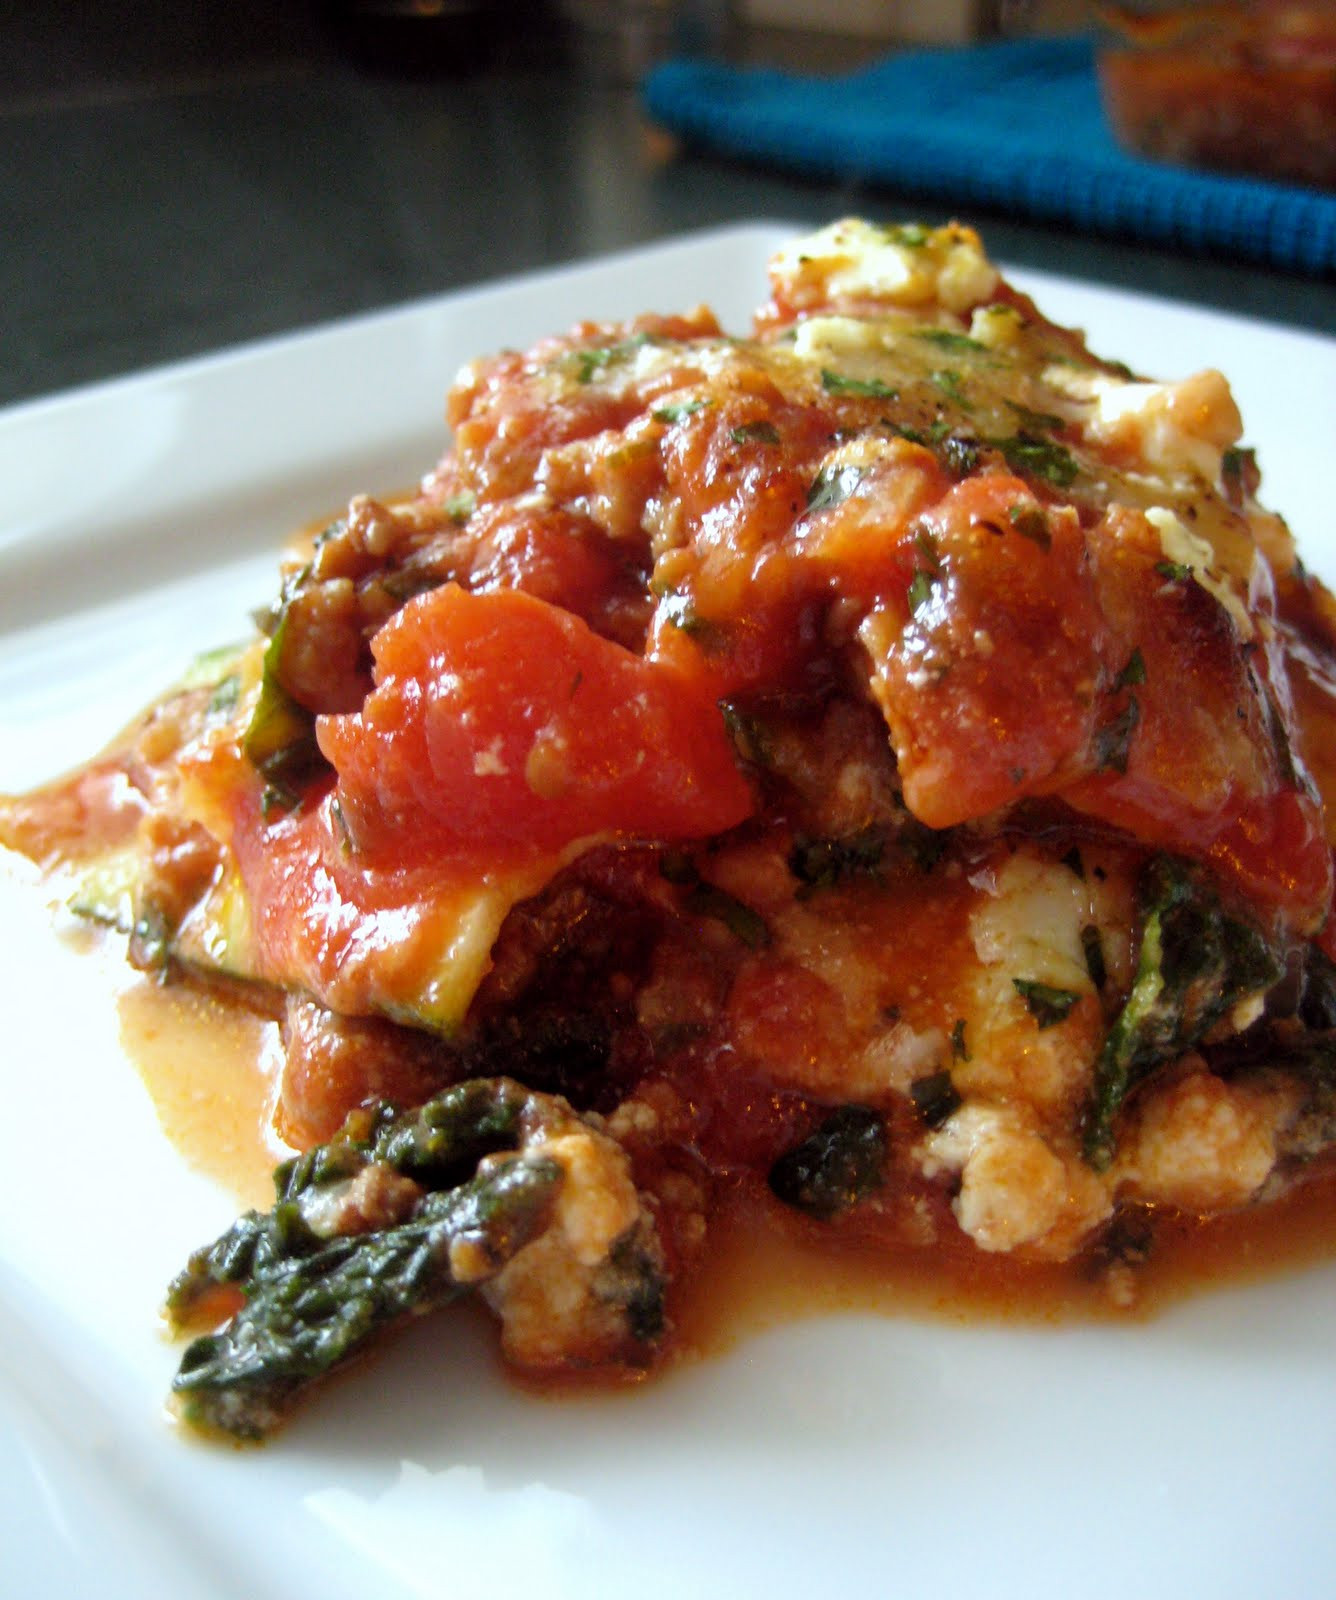 Vegetarian Eggplant Lasagna Without Noodles  Dandy Dishes Zucchini Lasagna